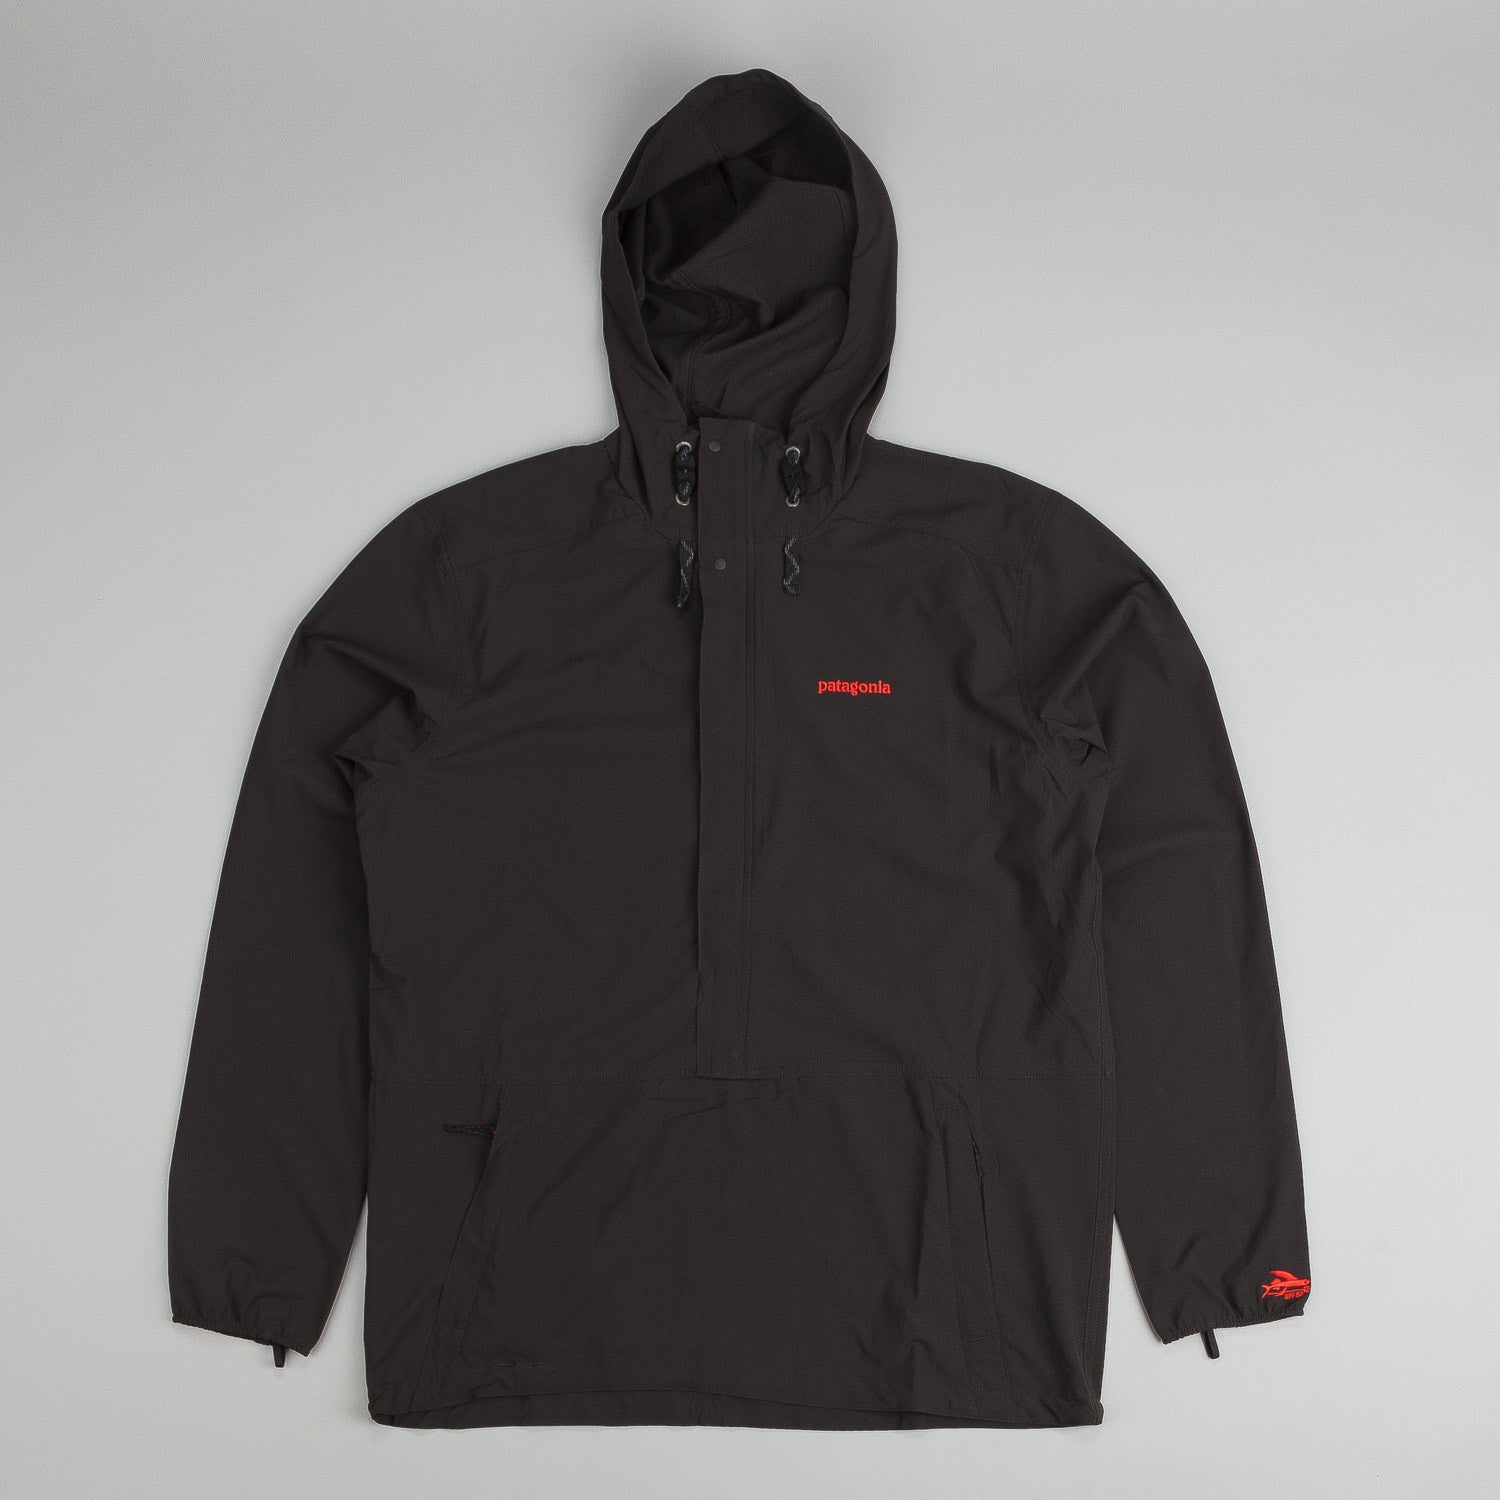 Patagonia Stretch Terre Planing Pullover Jacket